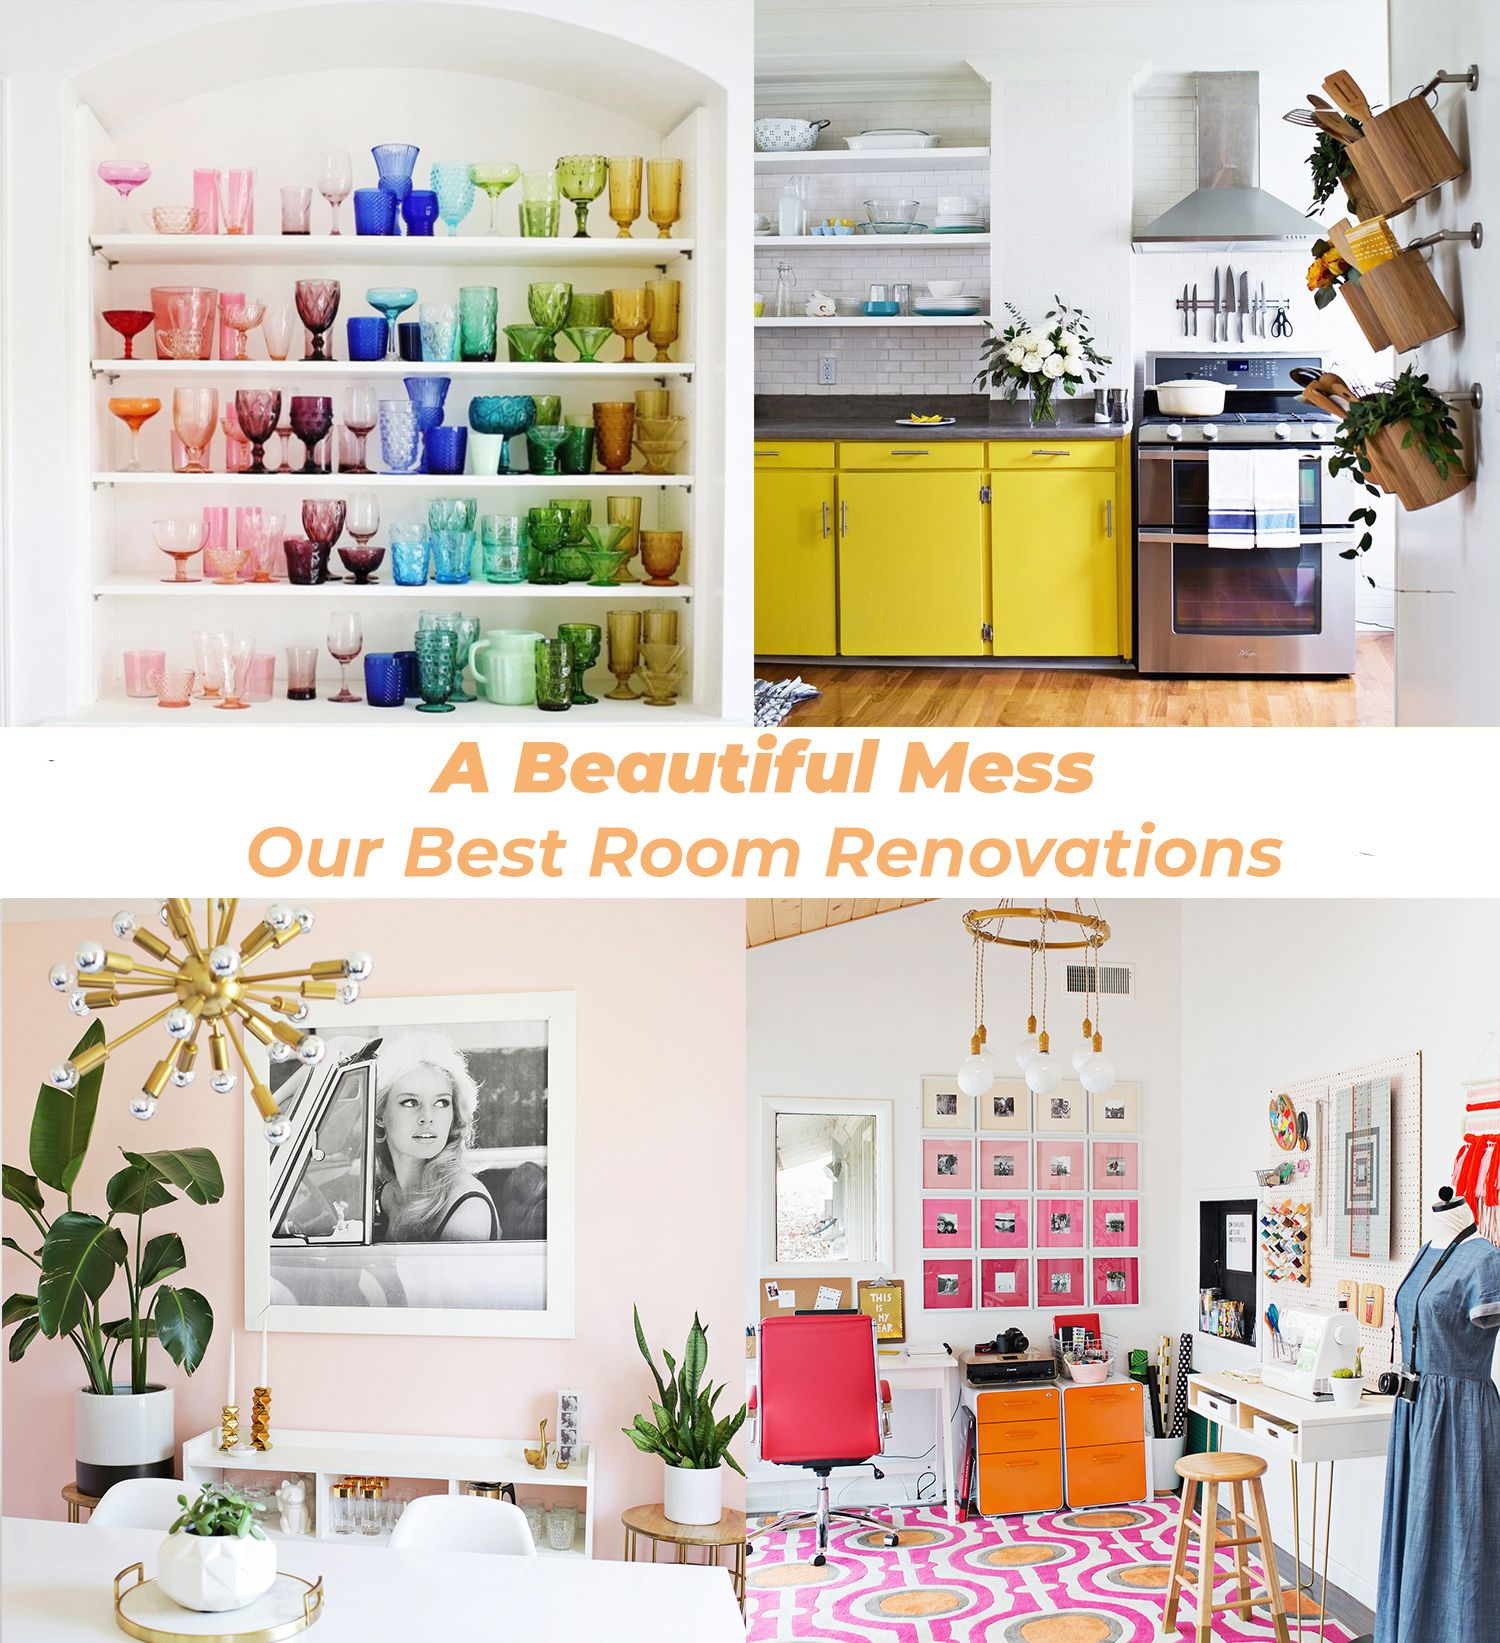 Our Best Room Renovations | Cool rooms, Renovation, Home decor